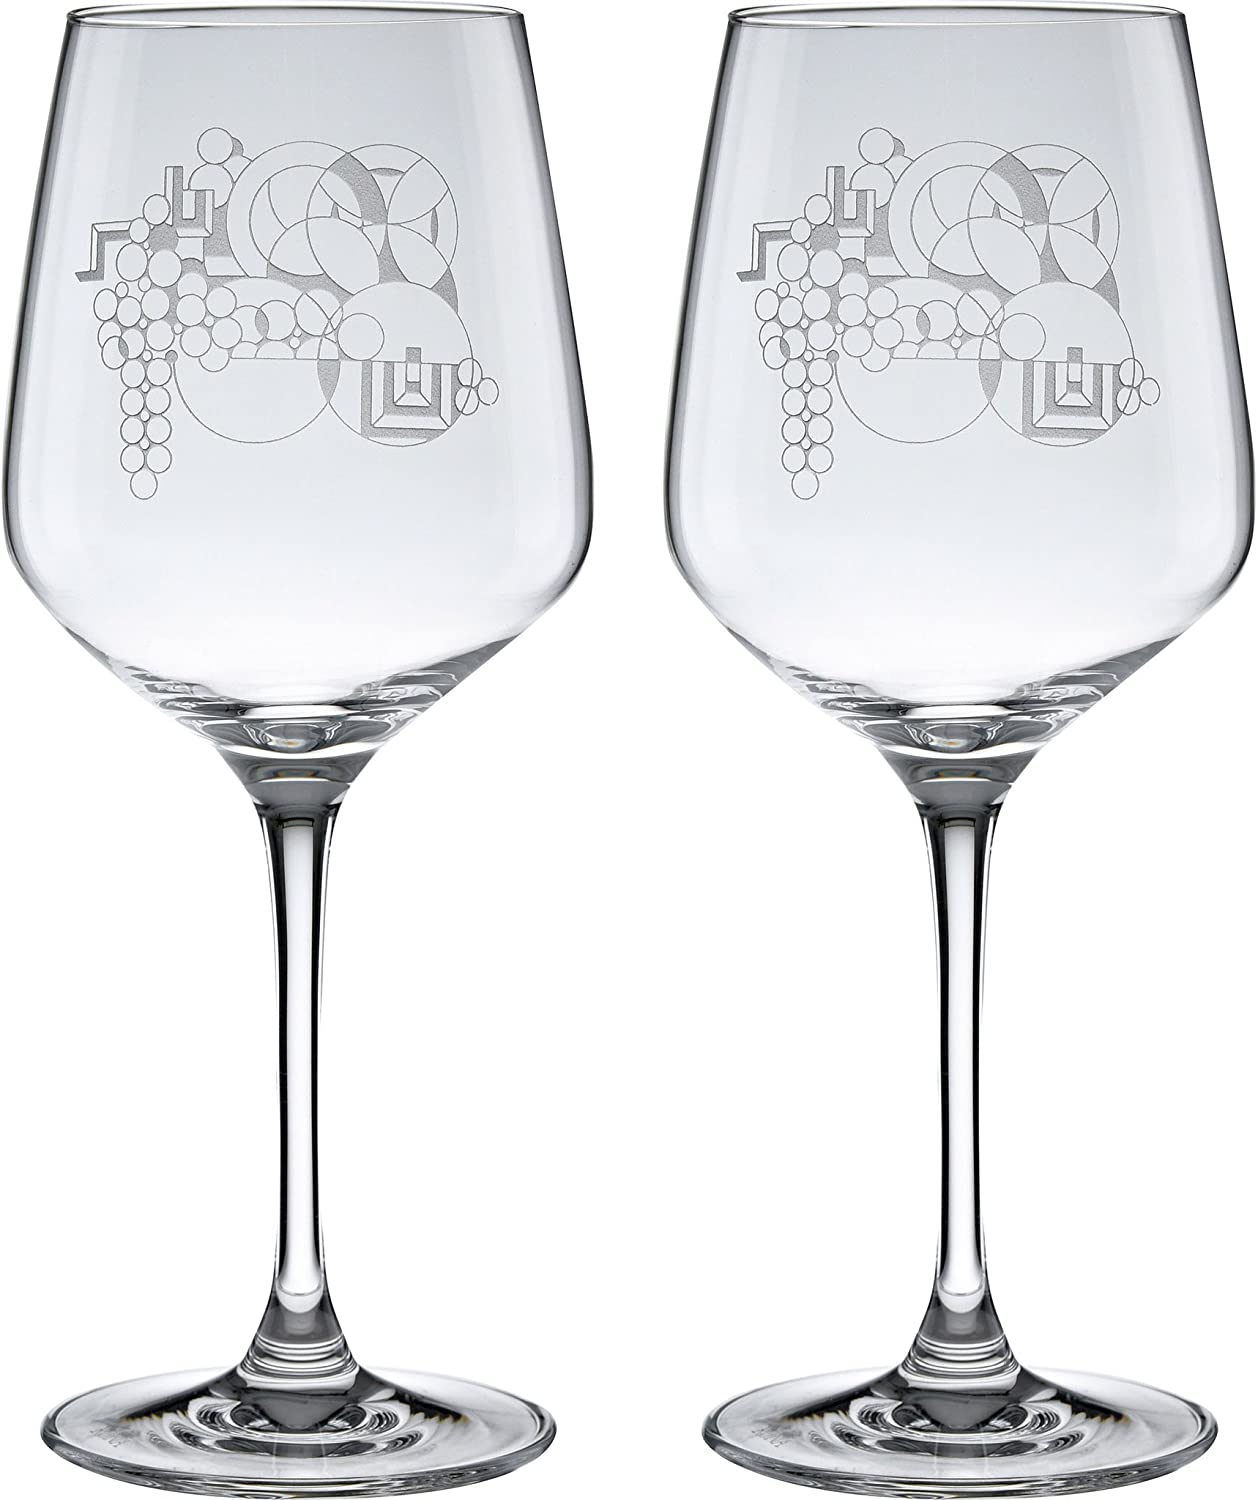 Frank Lloyd Wright May Basket Deep Etched Wine Glass 17.25-Ounce Set of 2